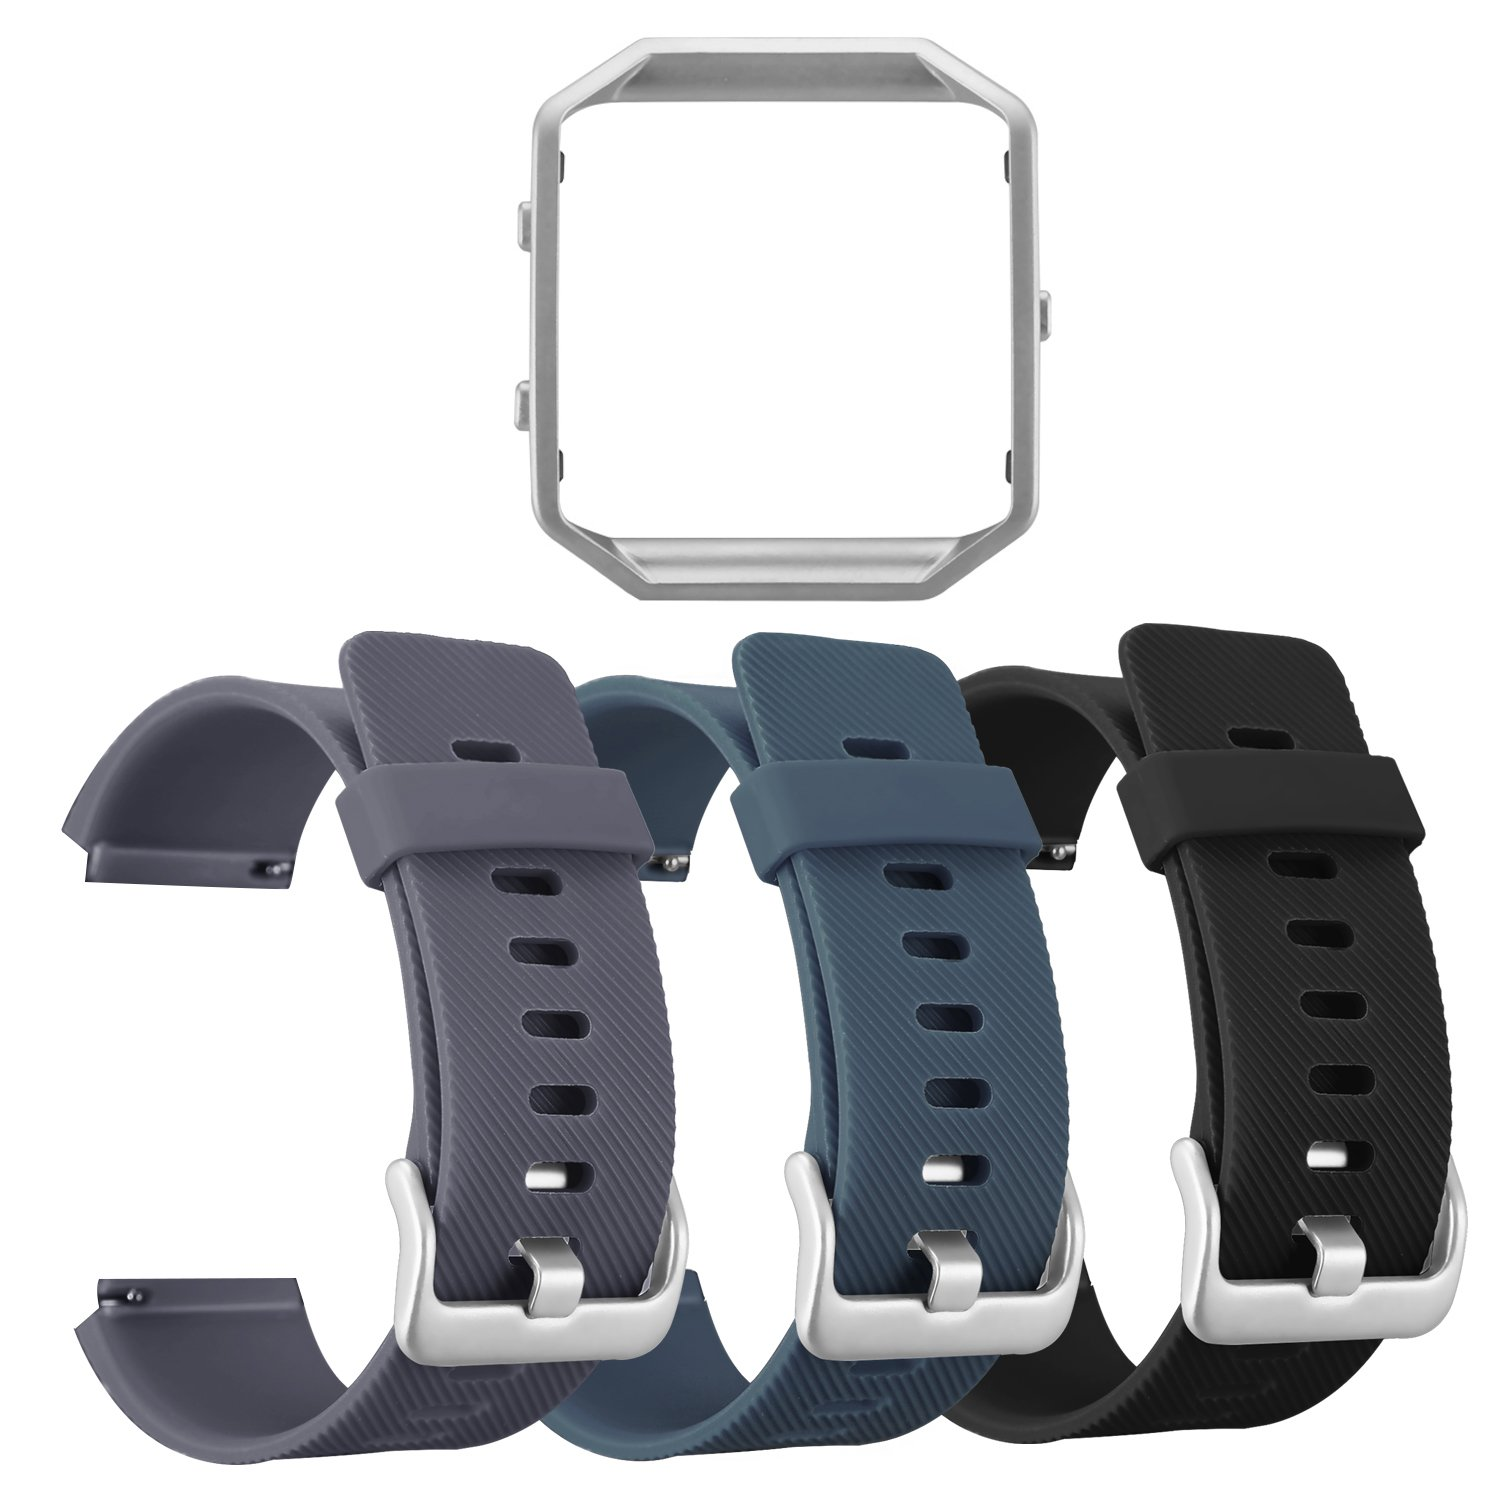 For Fitbit Blaze Bands,ESEEKGO 3 Pack Silicone Band with 1 Pcs Metal Frame for Fitbit Blaze Replacement Sport Fitness Accessory Wristband (No Tracker,Grey+Slate+Black,Silver Frame)